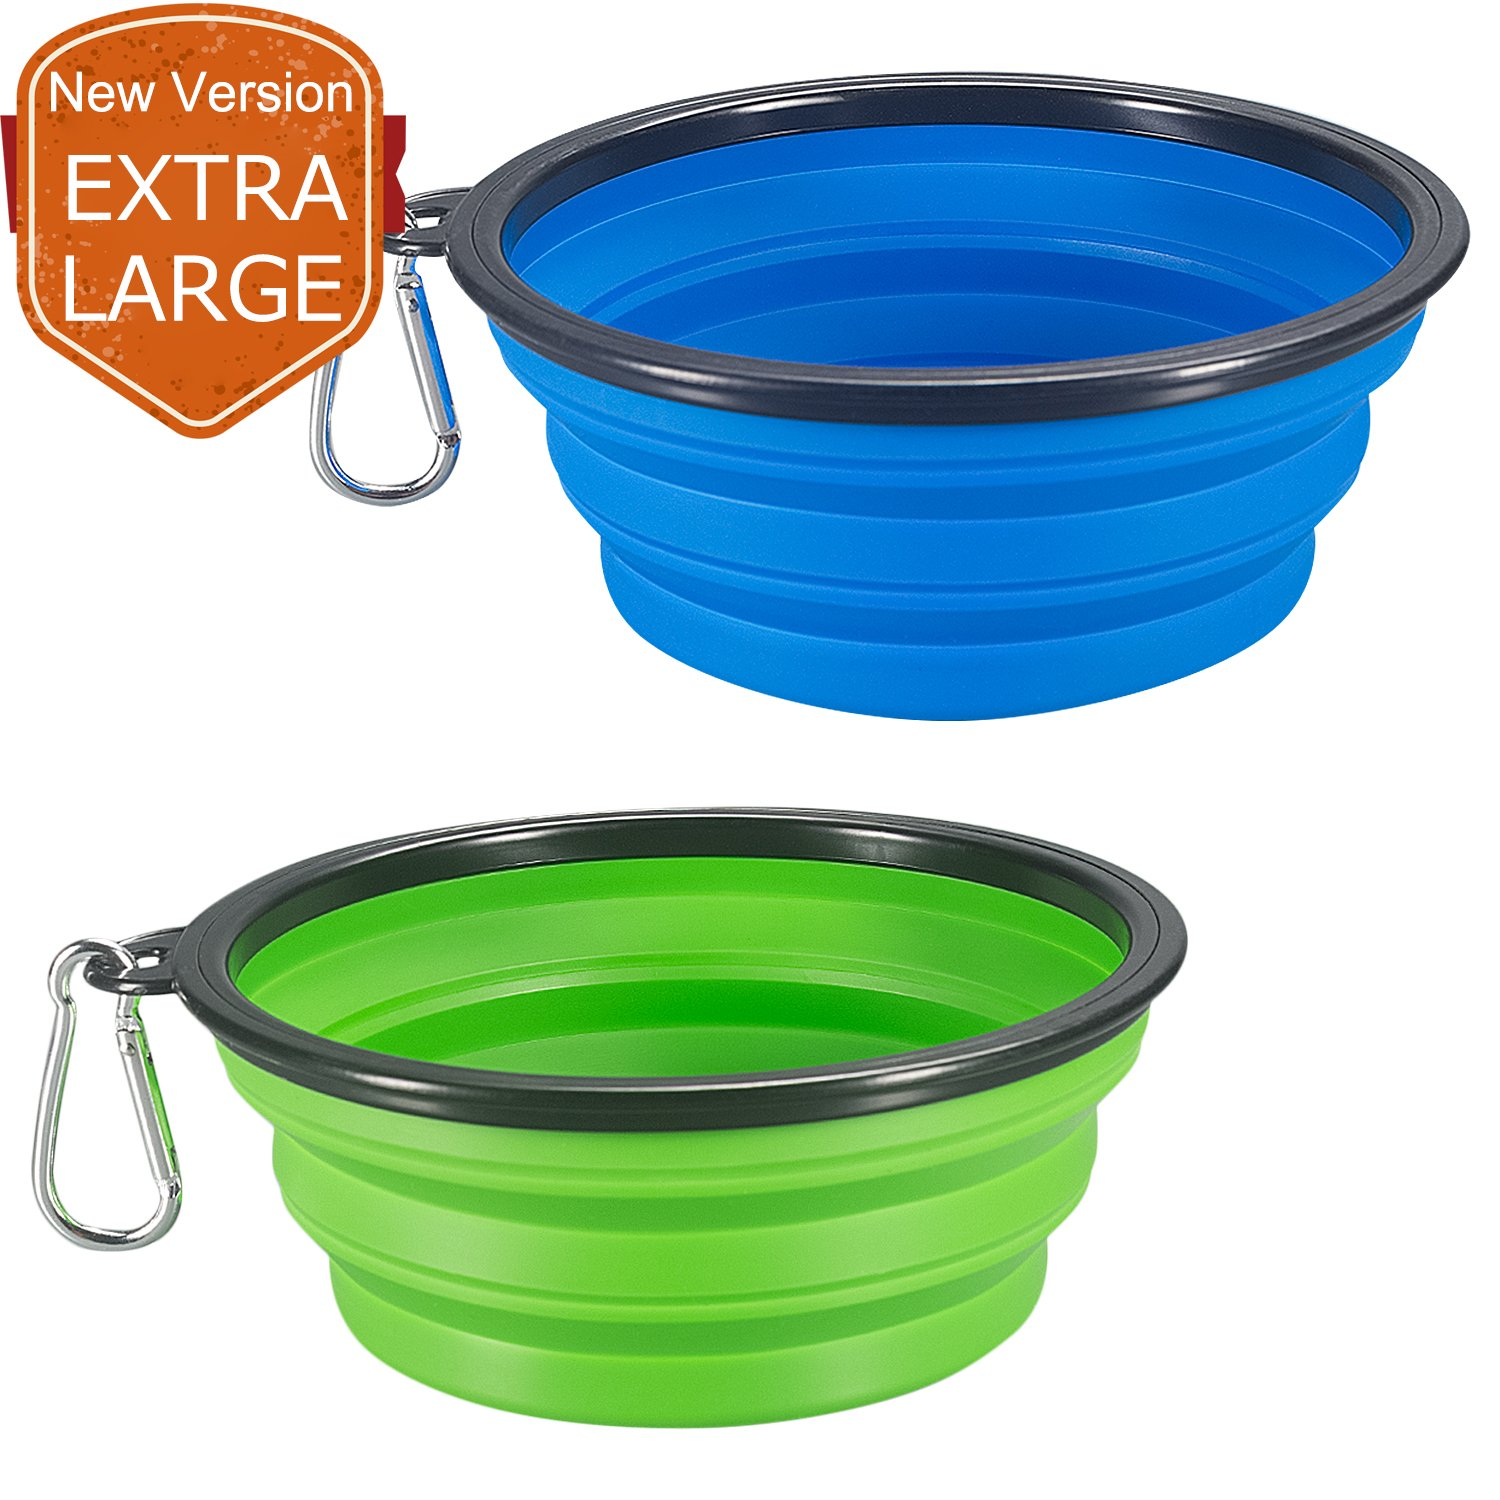 COMSUN 2-Pack Extra Large Size Collapsible Dog Bowl, Food Grade Silicone BPA Free, Foldable Expandable Cup Dish for Pet Cat Food Water Feeding Portable Travel Bowl Blue and Green Free Carabiner FBA_TP111R